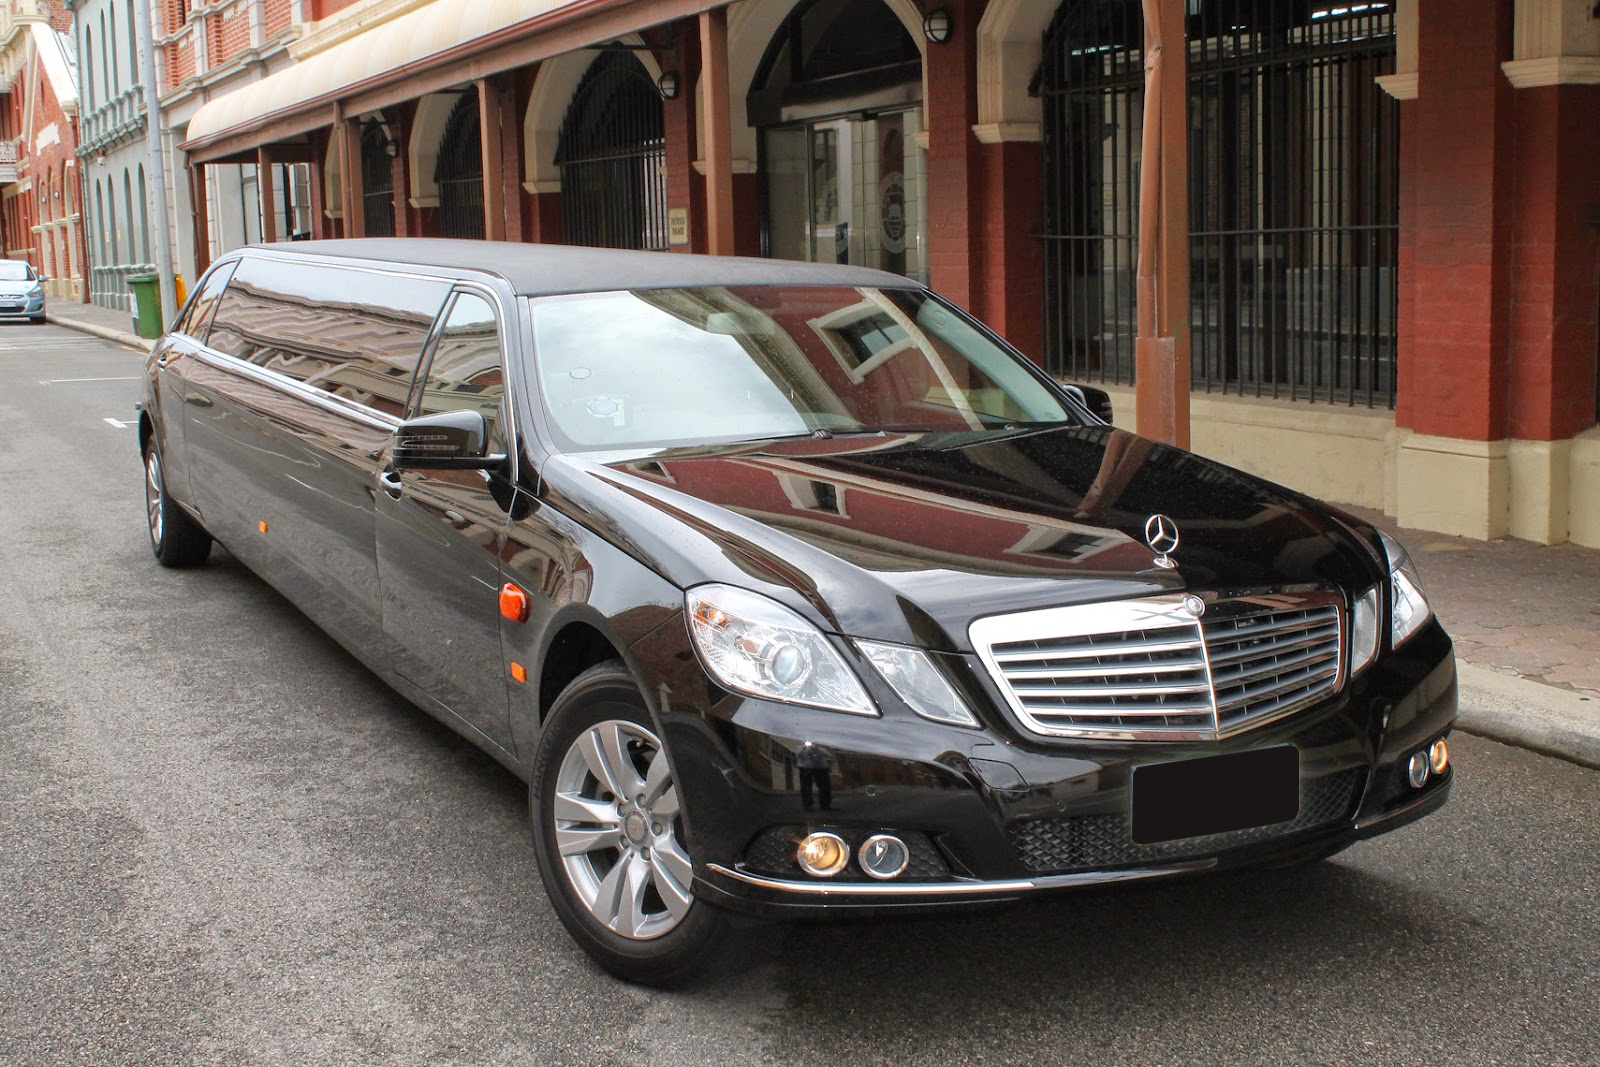 Top 5 Luxury Chauffeur Cars That People Love To Hire In Melbourne